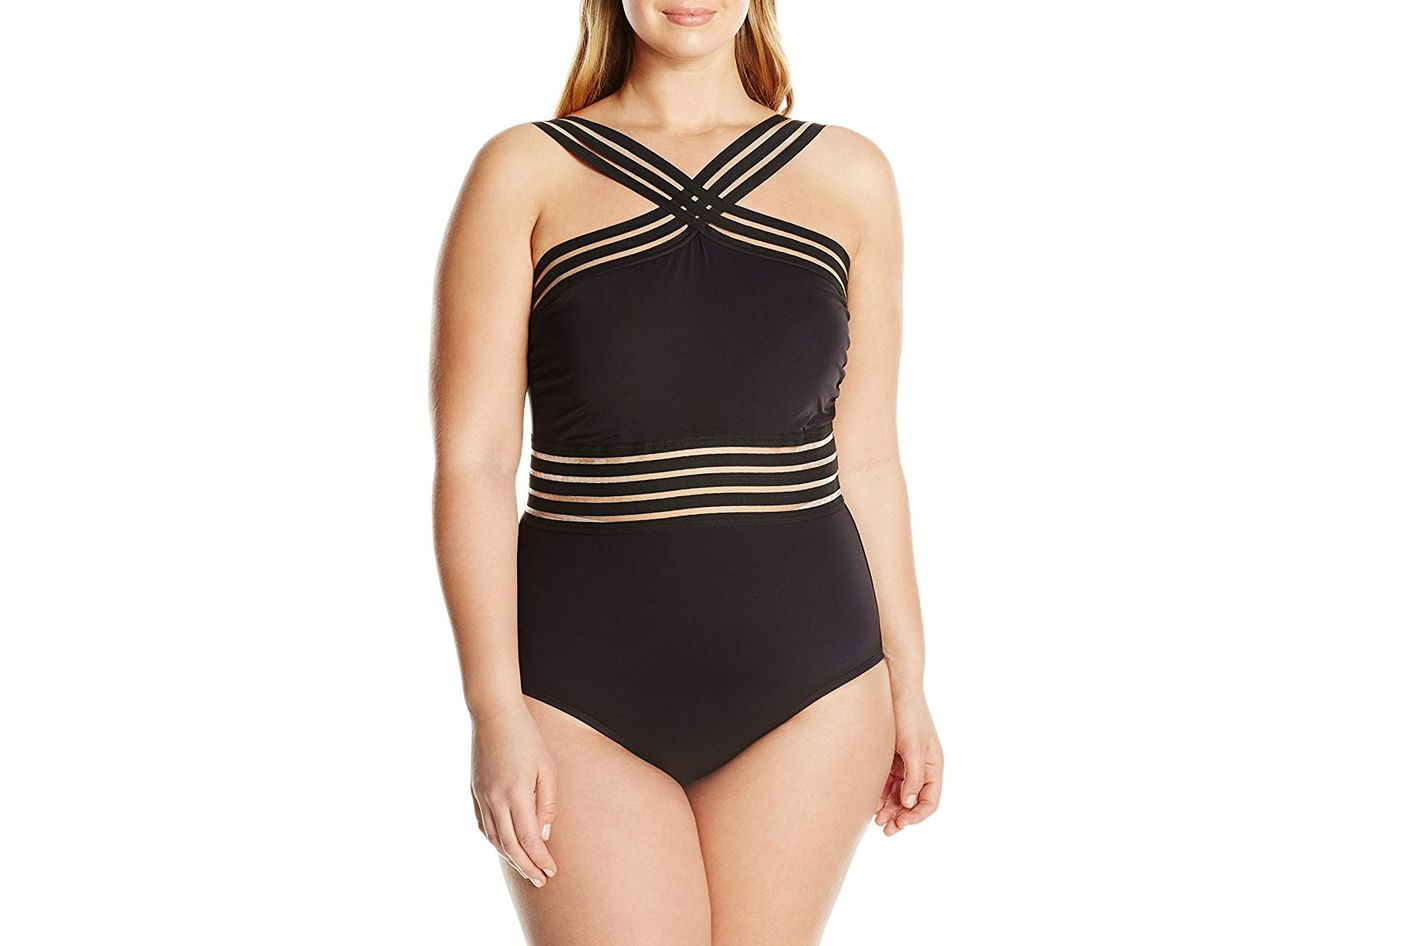 Kenneth Cole Reaction High Neck One Piece Swimsuit